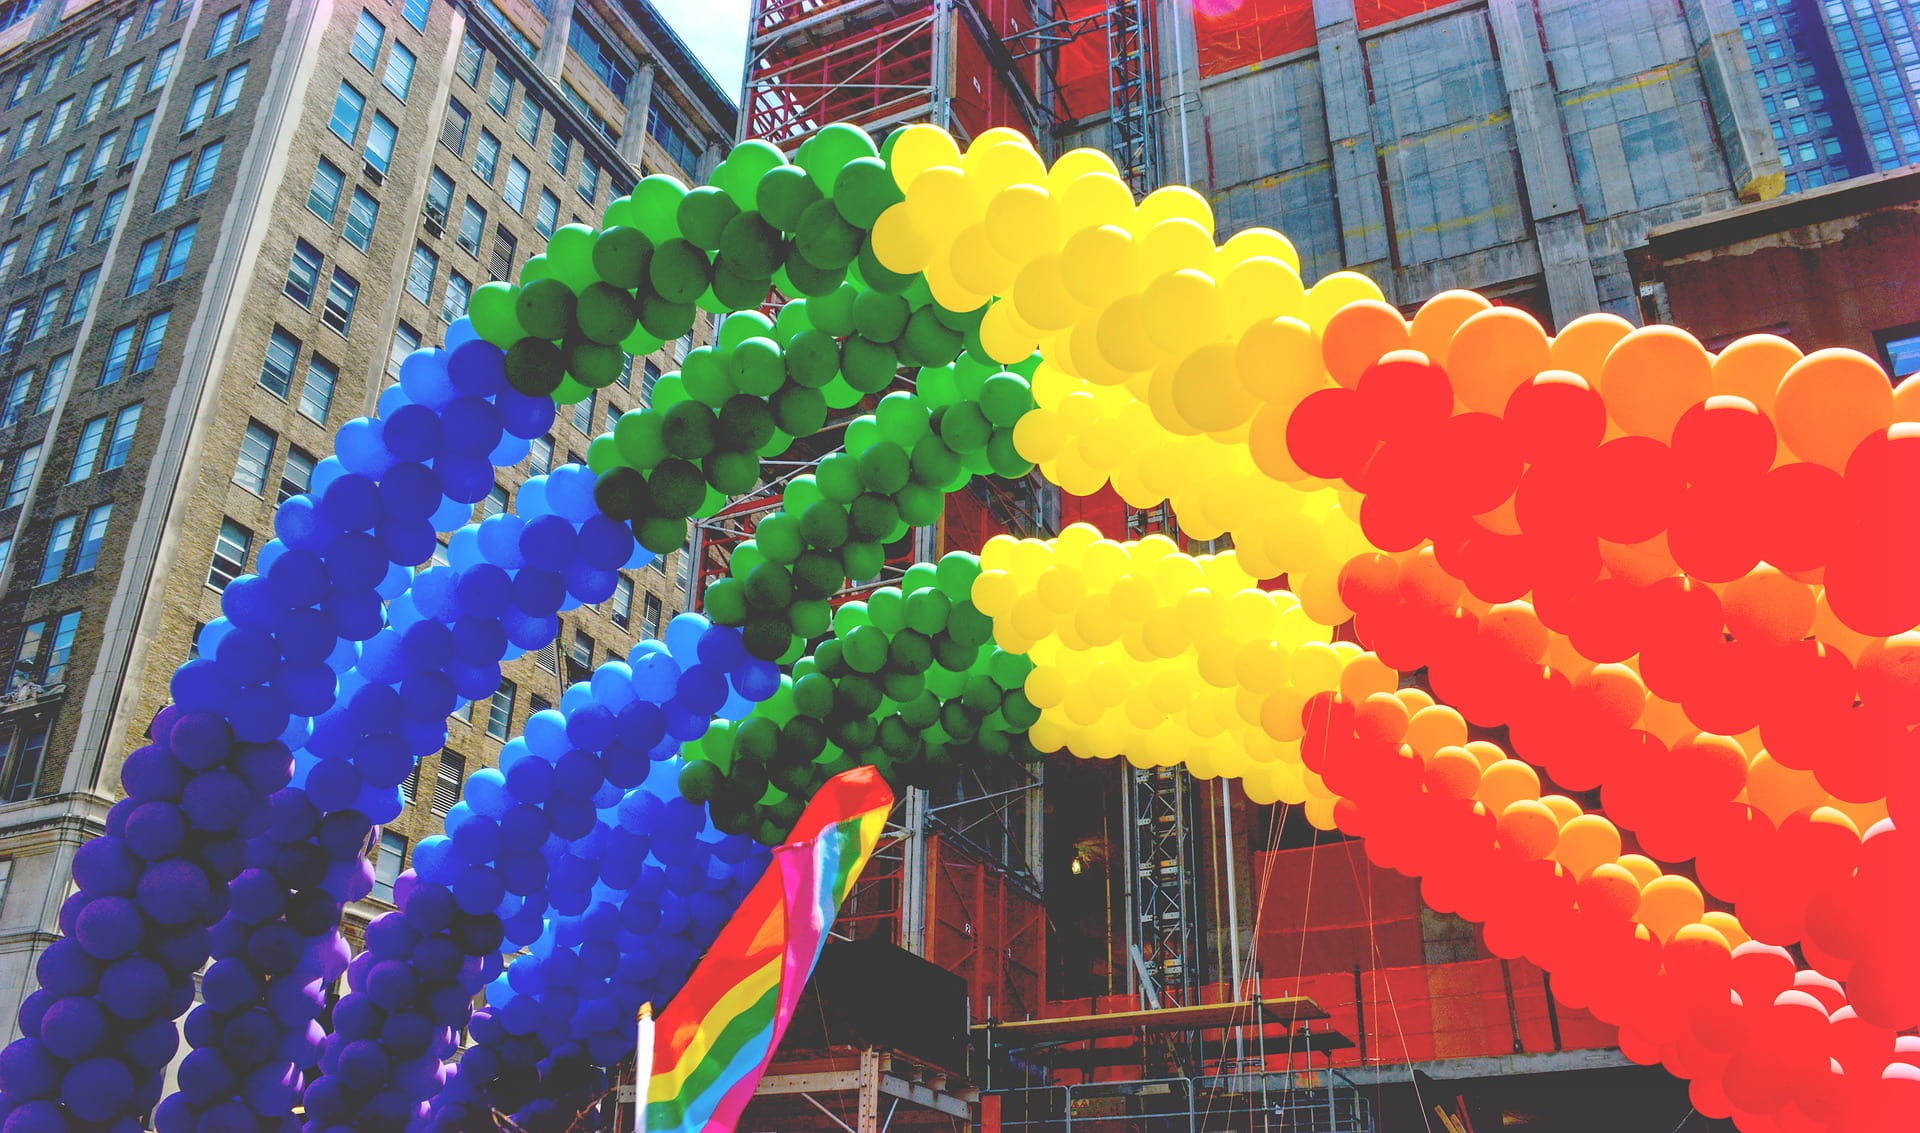 Rainbow pride balloons with tall buildings in background